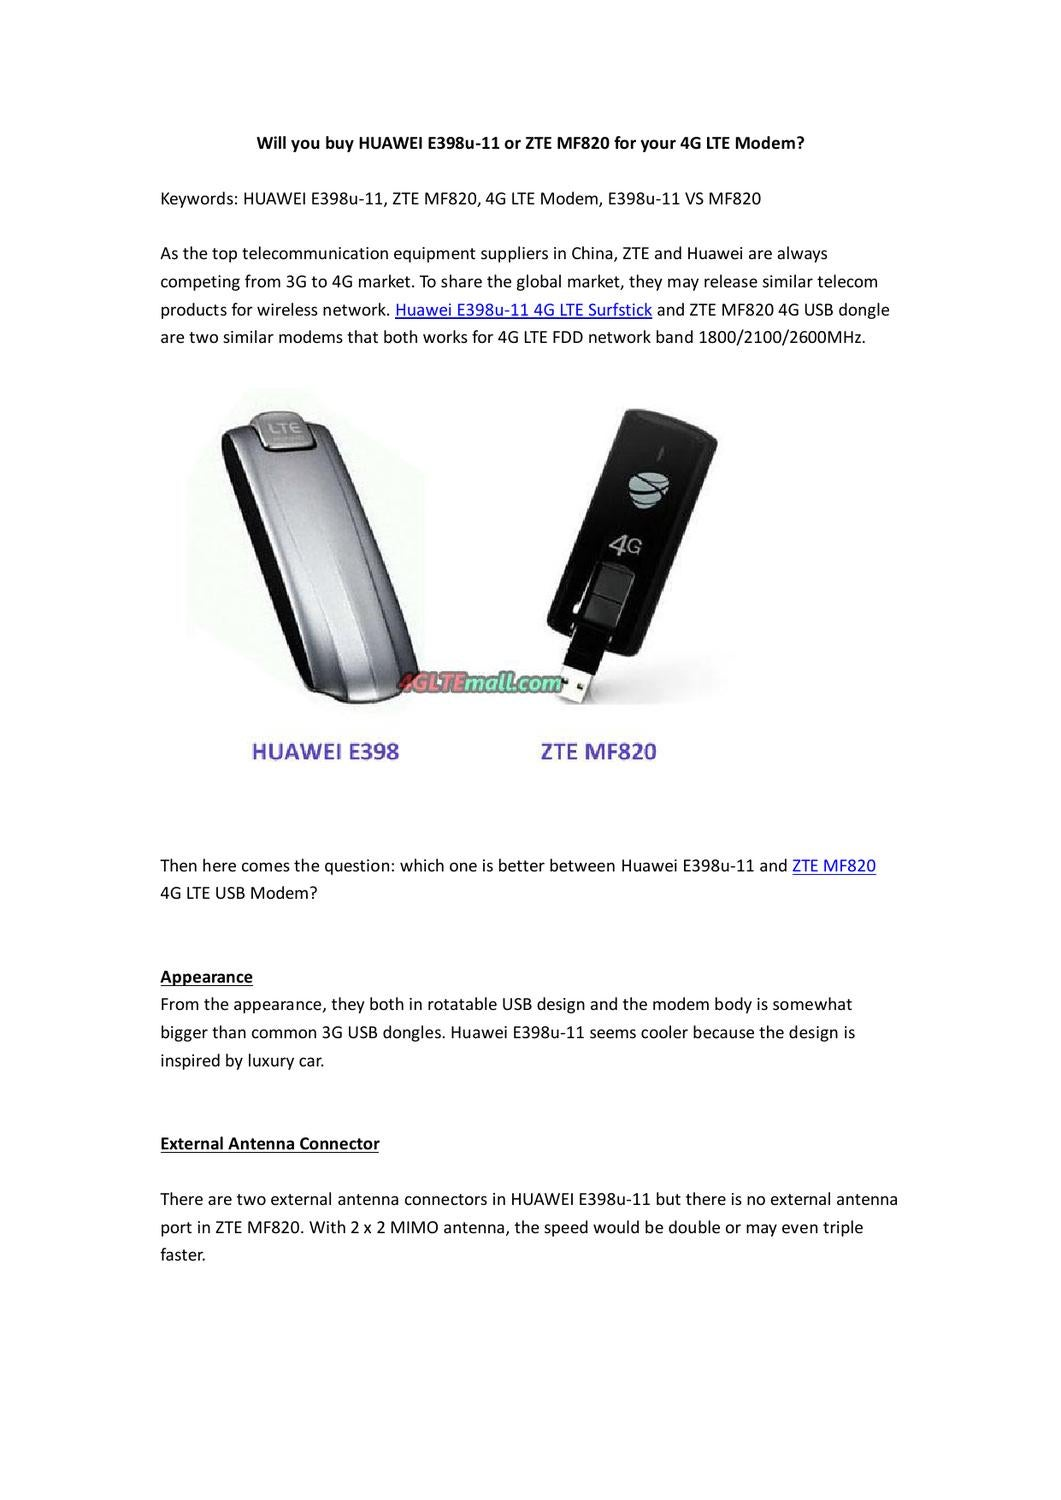 Will you buy HUAWEI E398u-11 or ZTE MF820 for your 4G LTE Modem? by